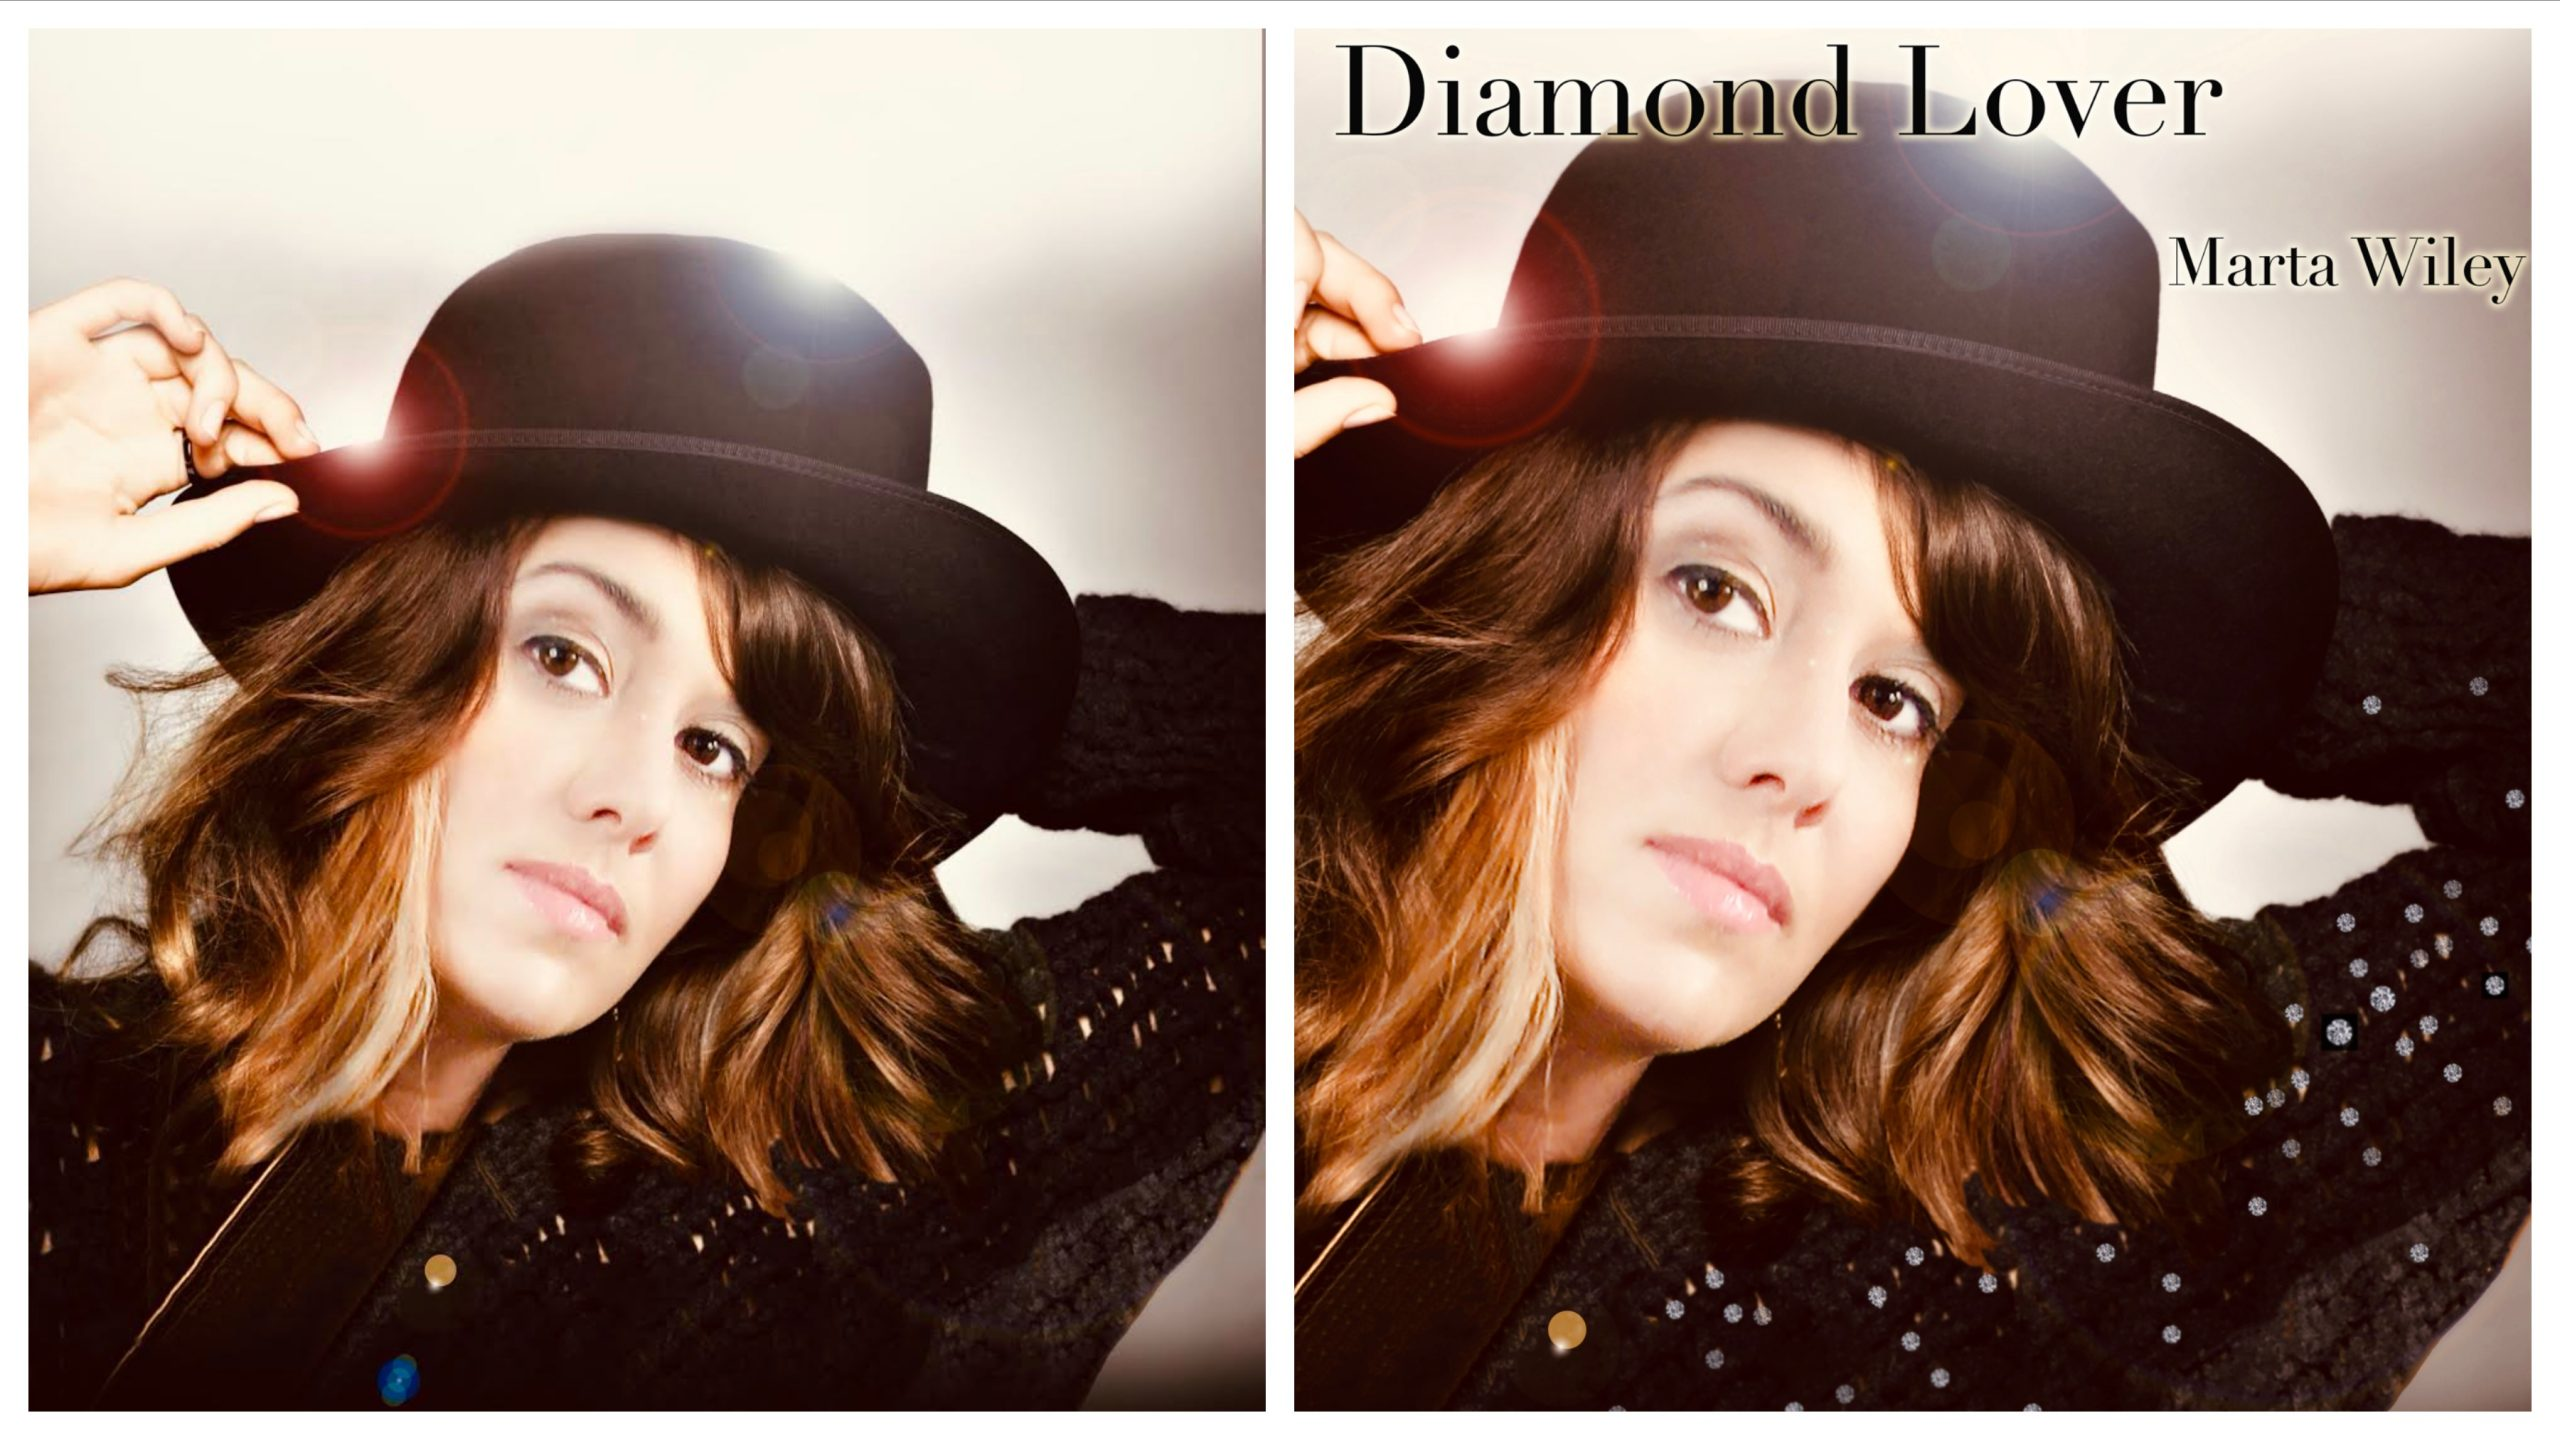 Artist Marta Wiley is a trendsetter and is inspiring people with her music and the release of her new single 'Diamond Lover'